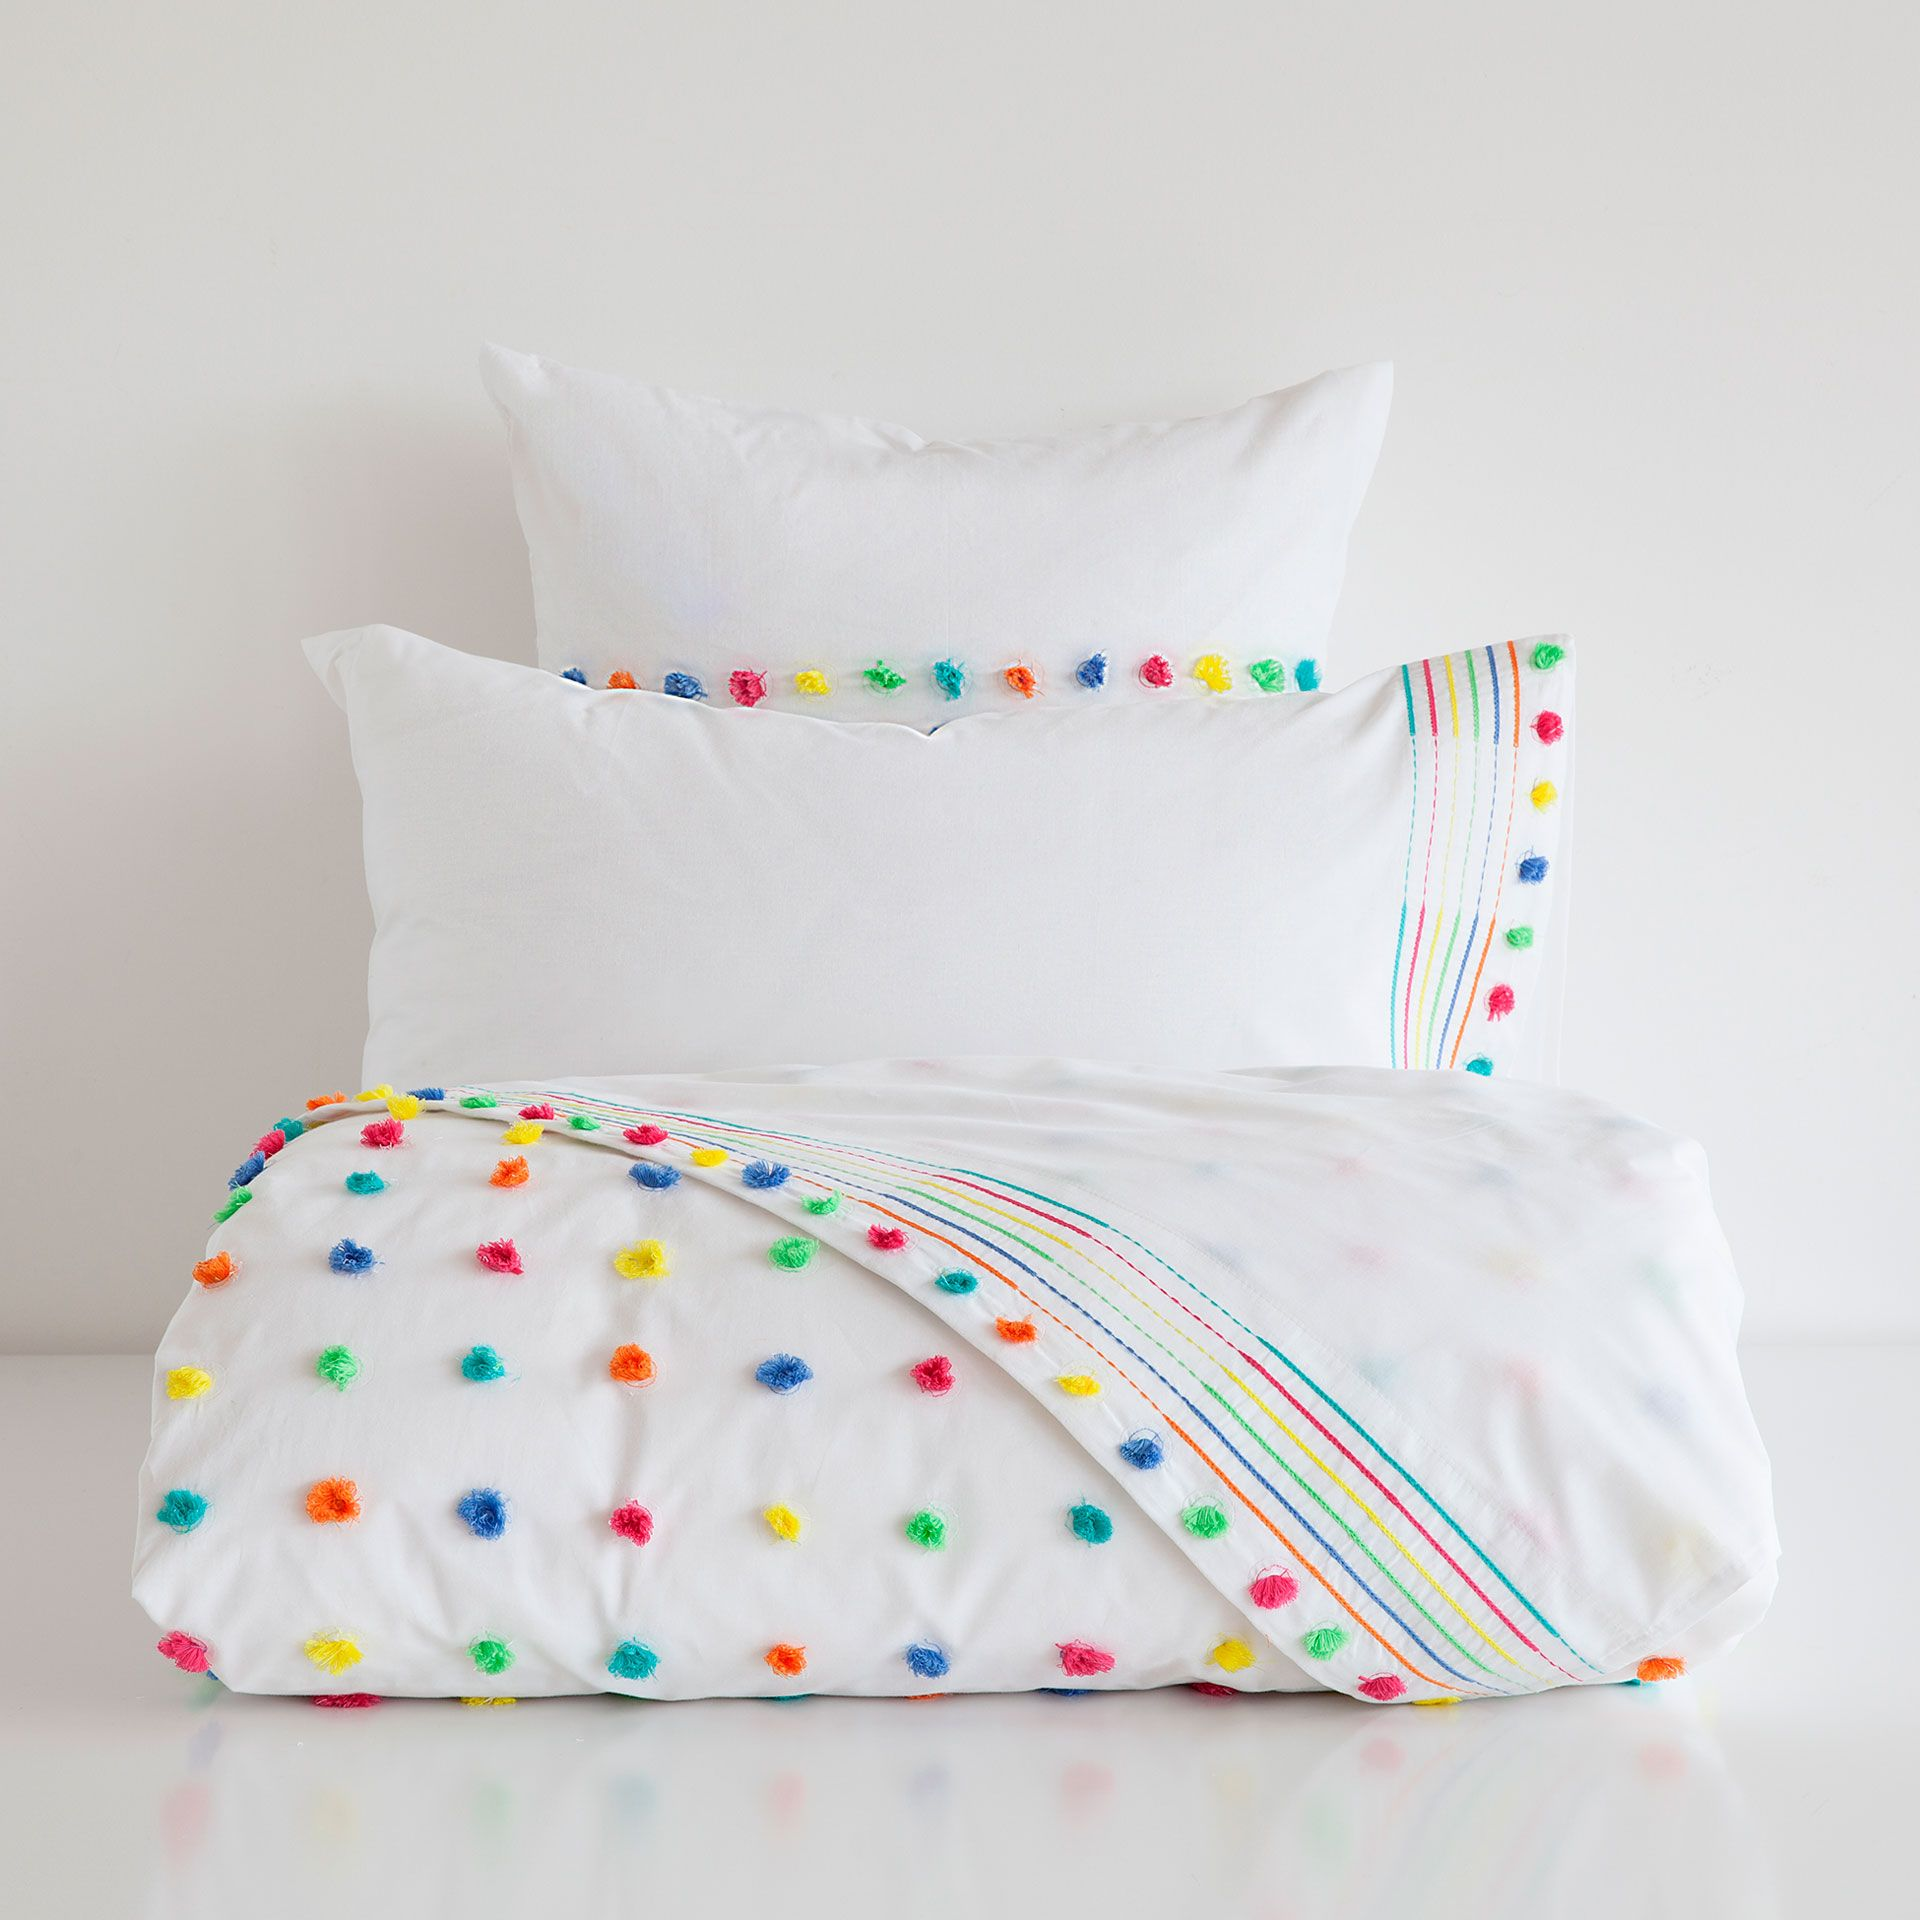 POMPOM EGYPTIAN PERCALE BED LINEN   Bed linen design ...